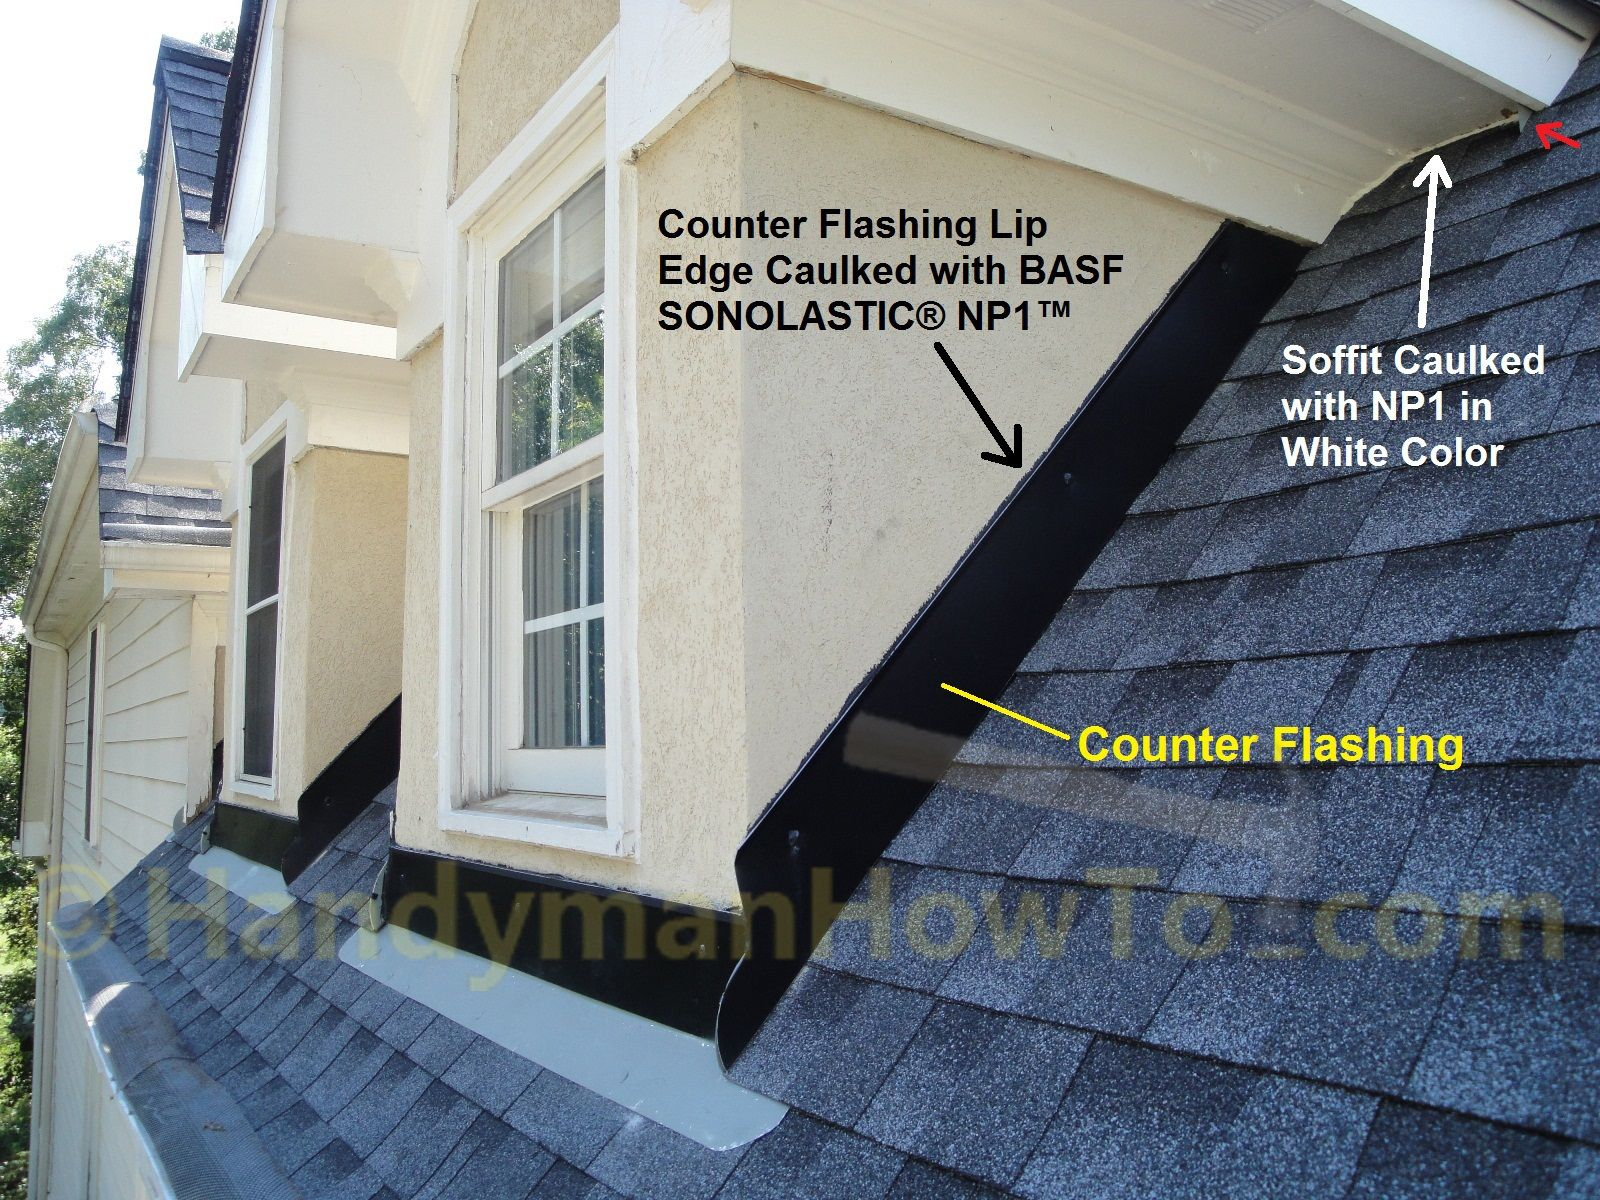 Mansard Dormer Siding Options Images Yahoo Image Search Results Stucco Homes Porch Roof Concrete Front Porch